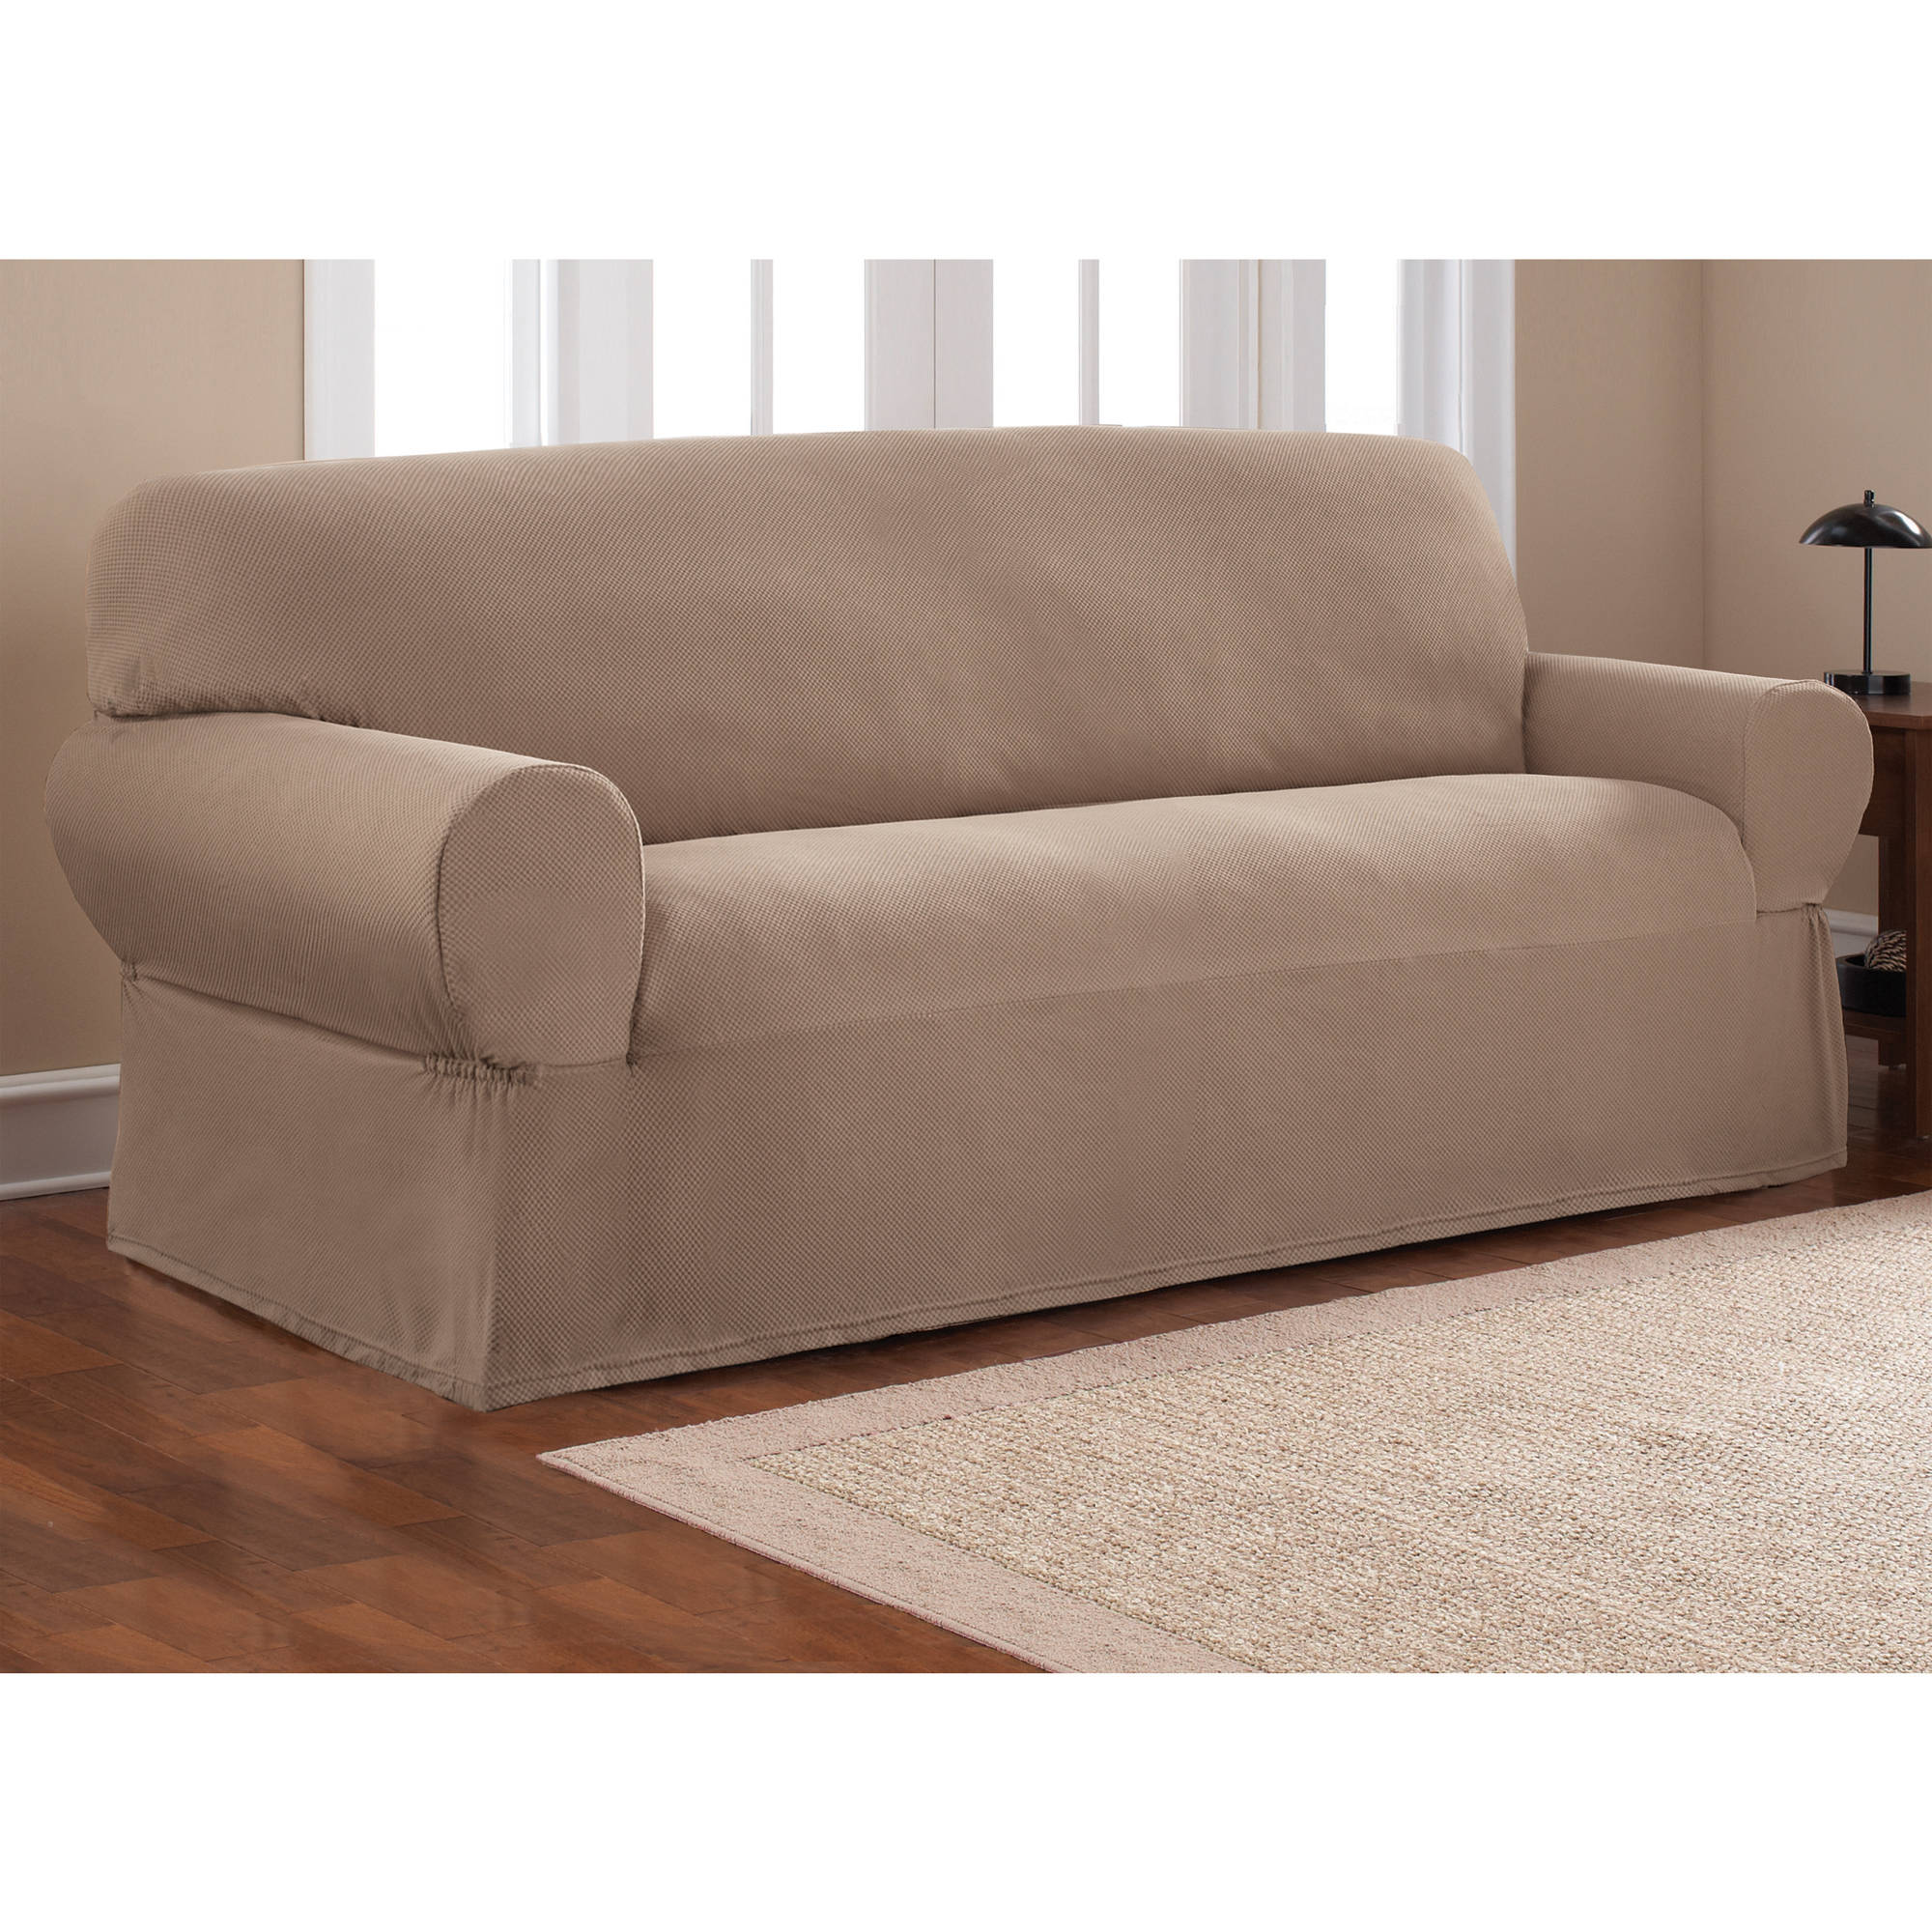 Mainstays Stretch Pixel 1 Piece Sofa Furniture Cover Slipcover, Chocolate  Brown   Walmart.com